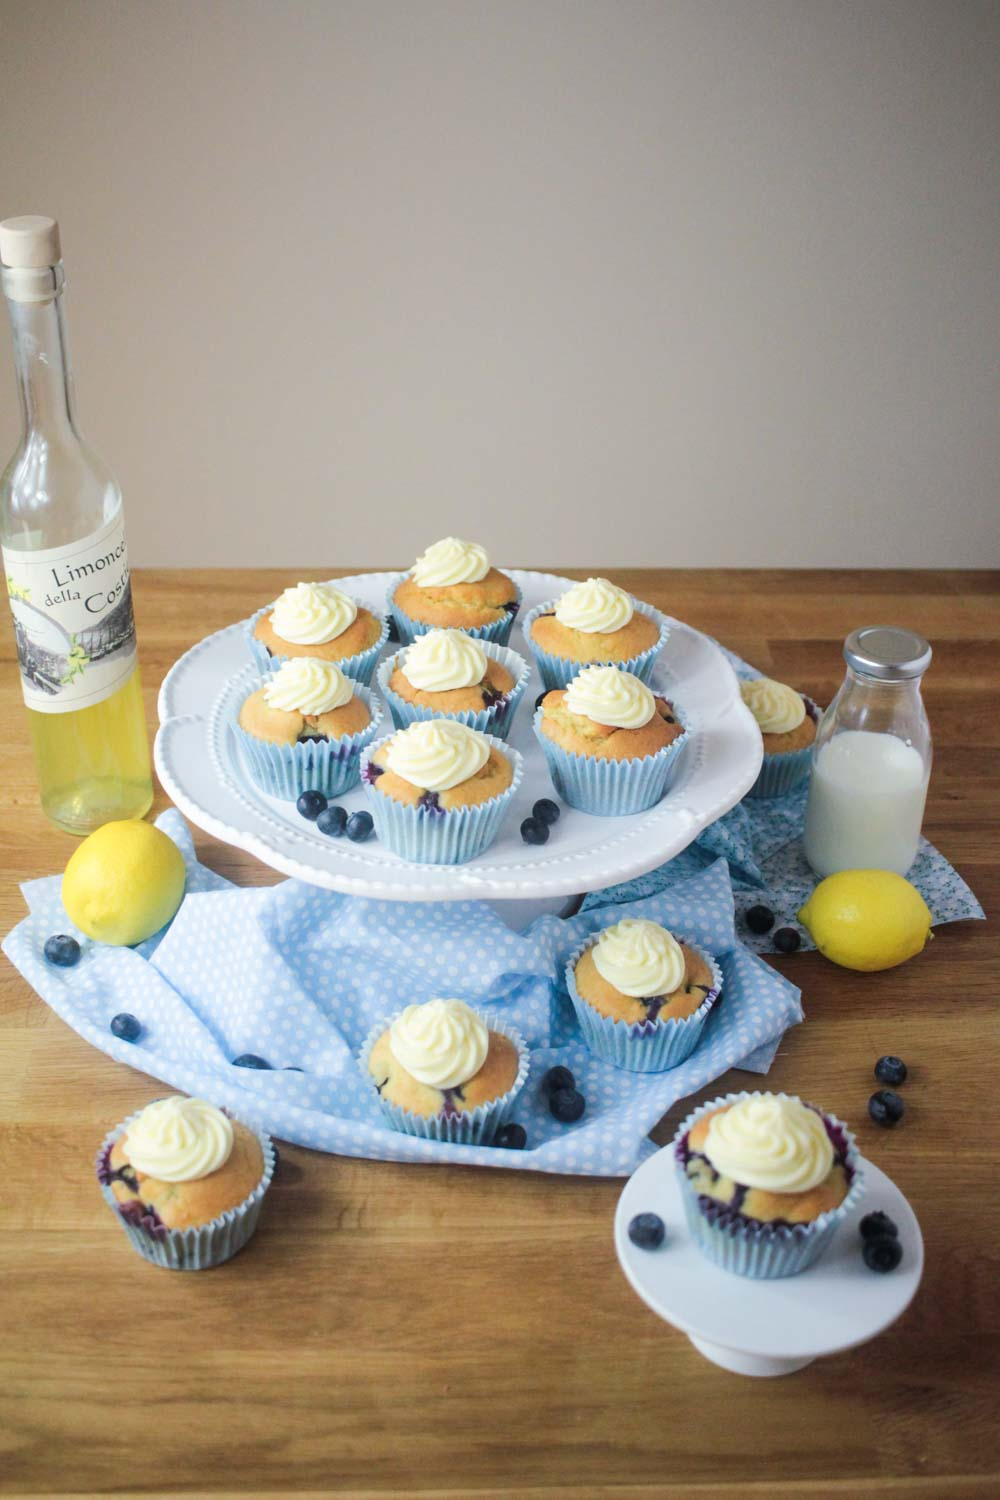 Blueberry and Lemon Muffins with a Limoncello Frosting-4 - Globe Scoffers | globescoffers.com